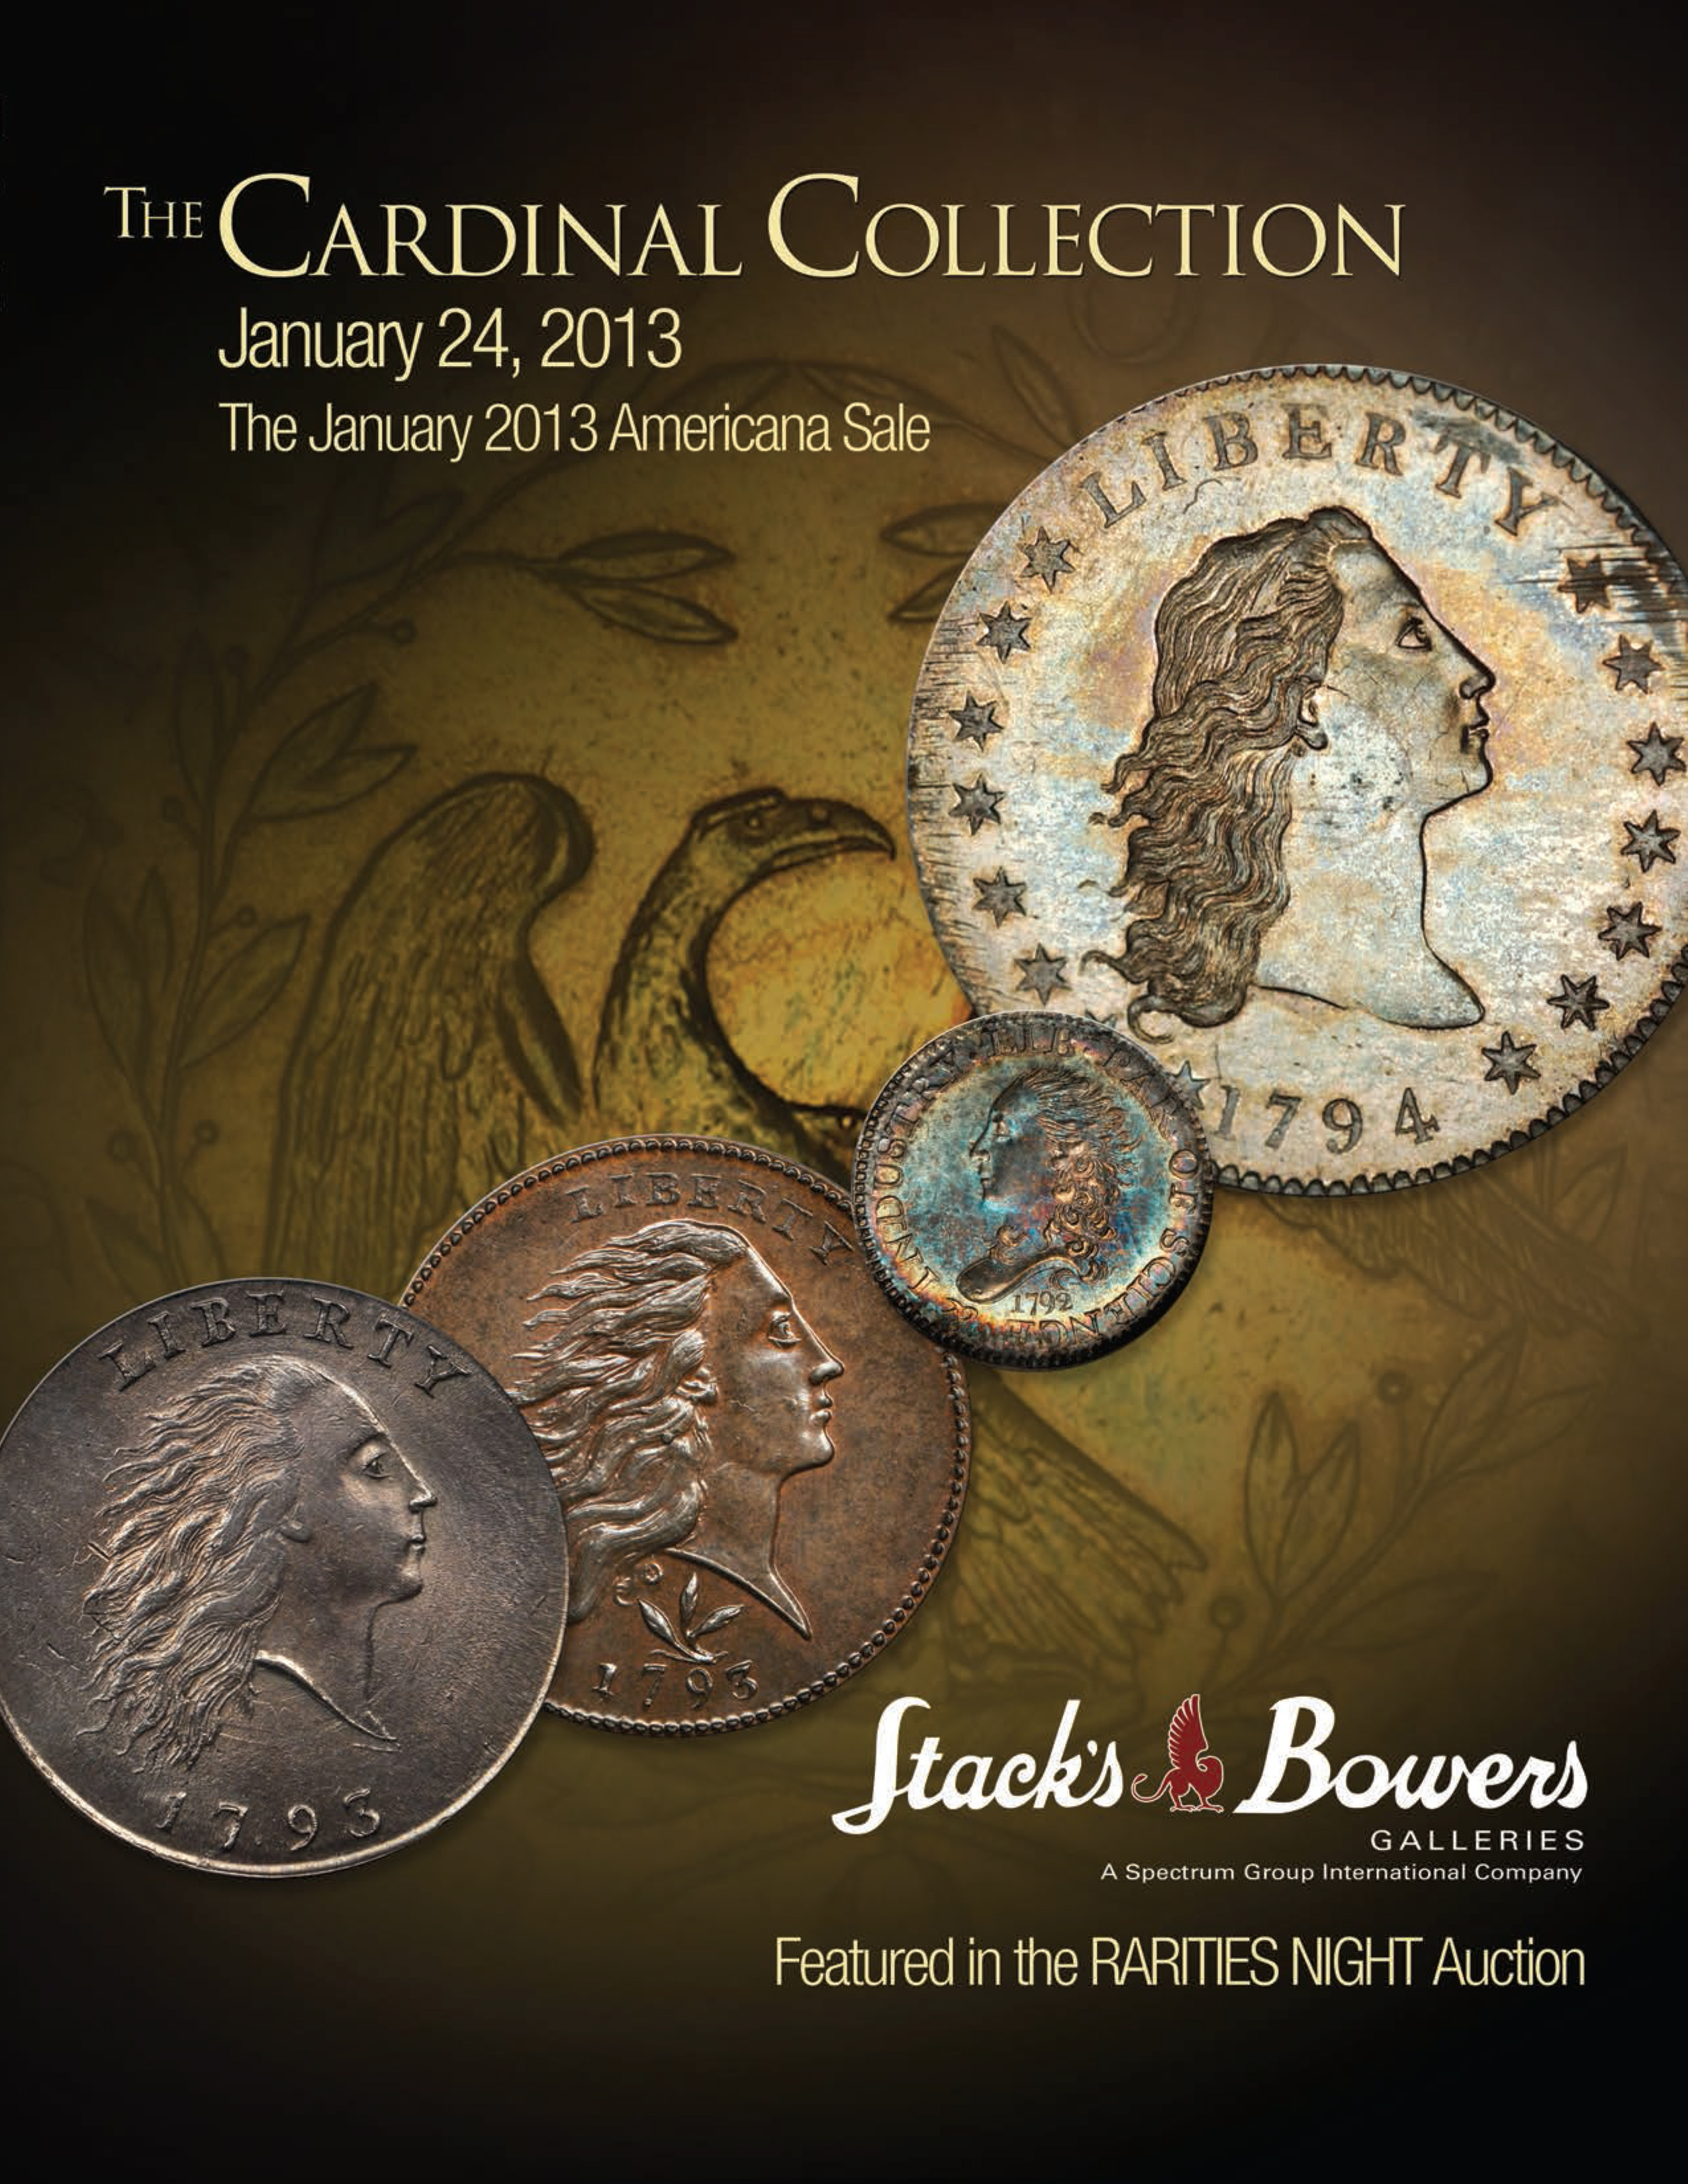 The Cardinal Collection, The January 2013 Americana Sale